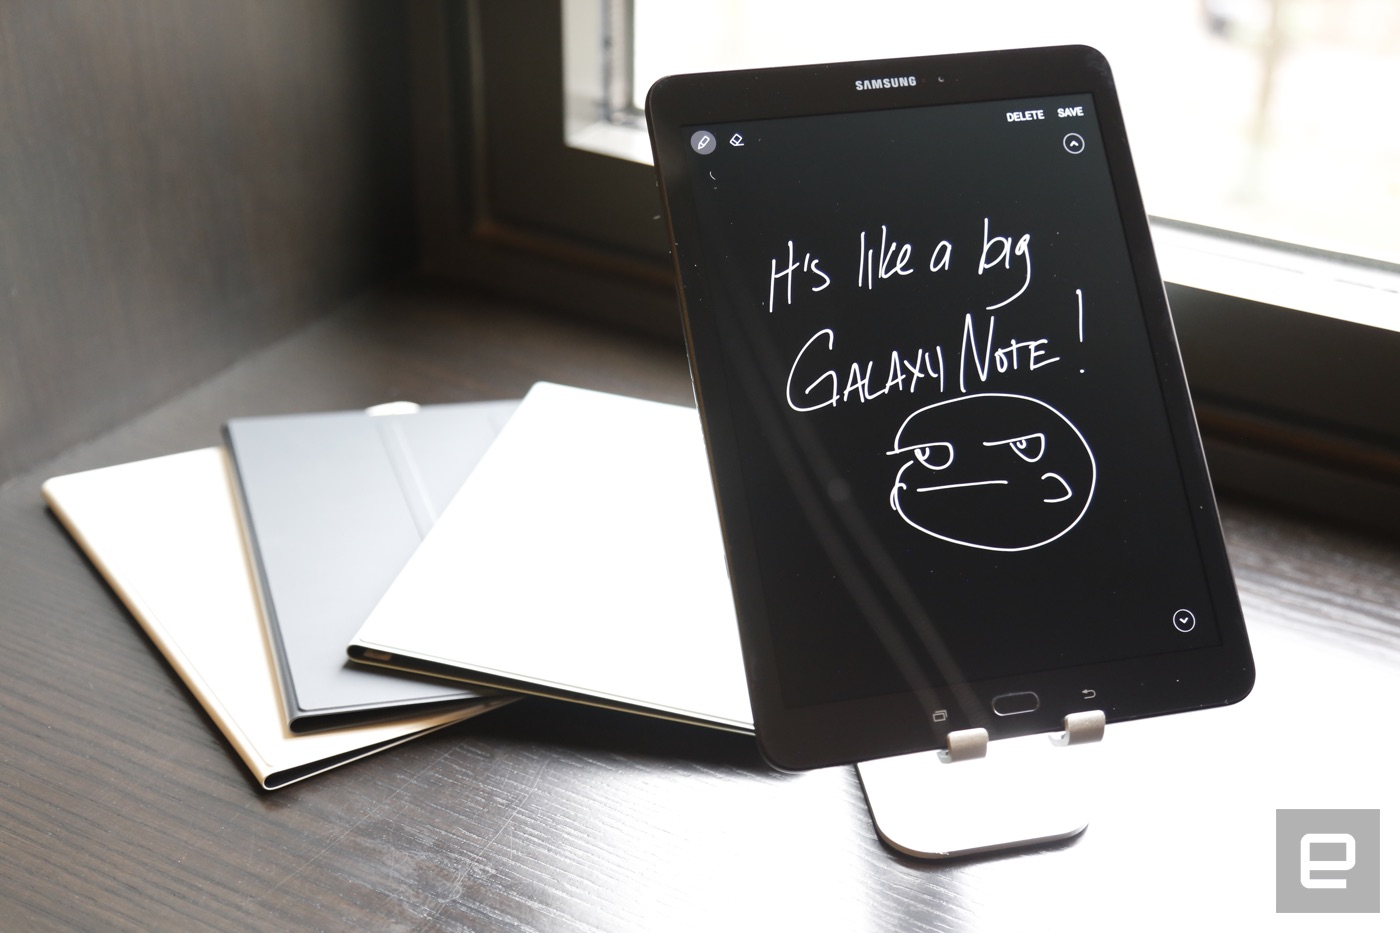 Samsung S Galaxy Tab S3 Is Basically Another Note Tablet